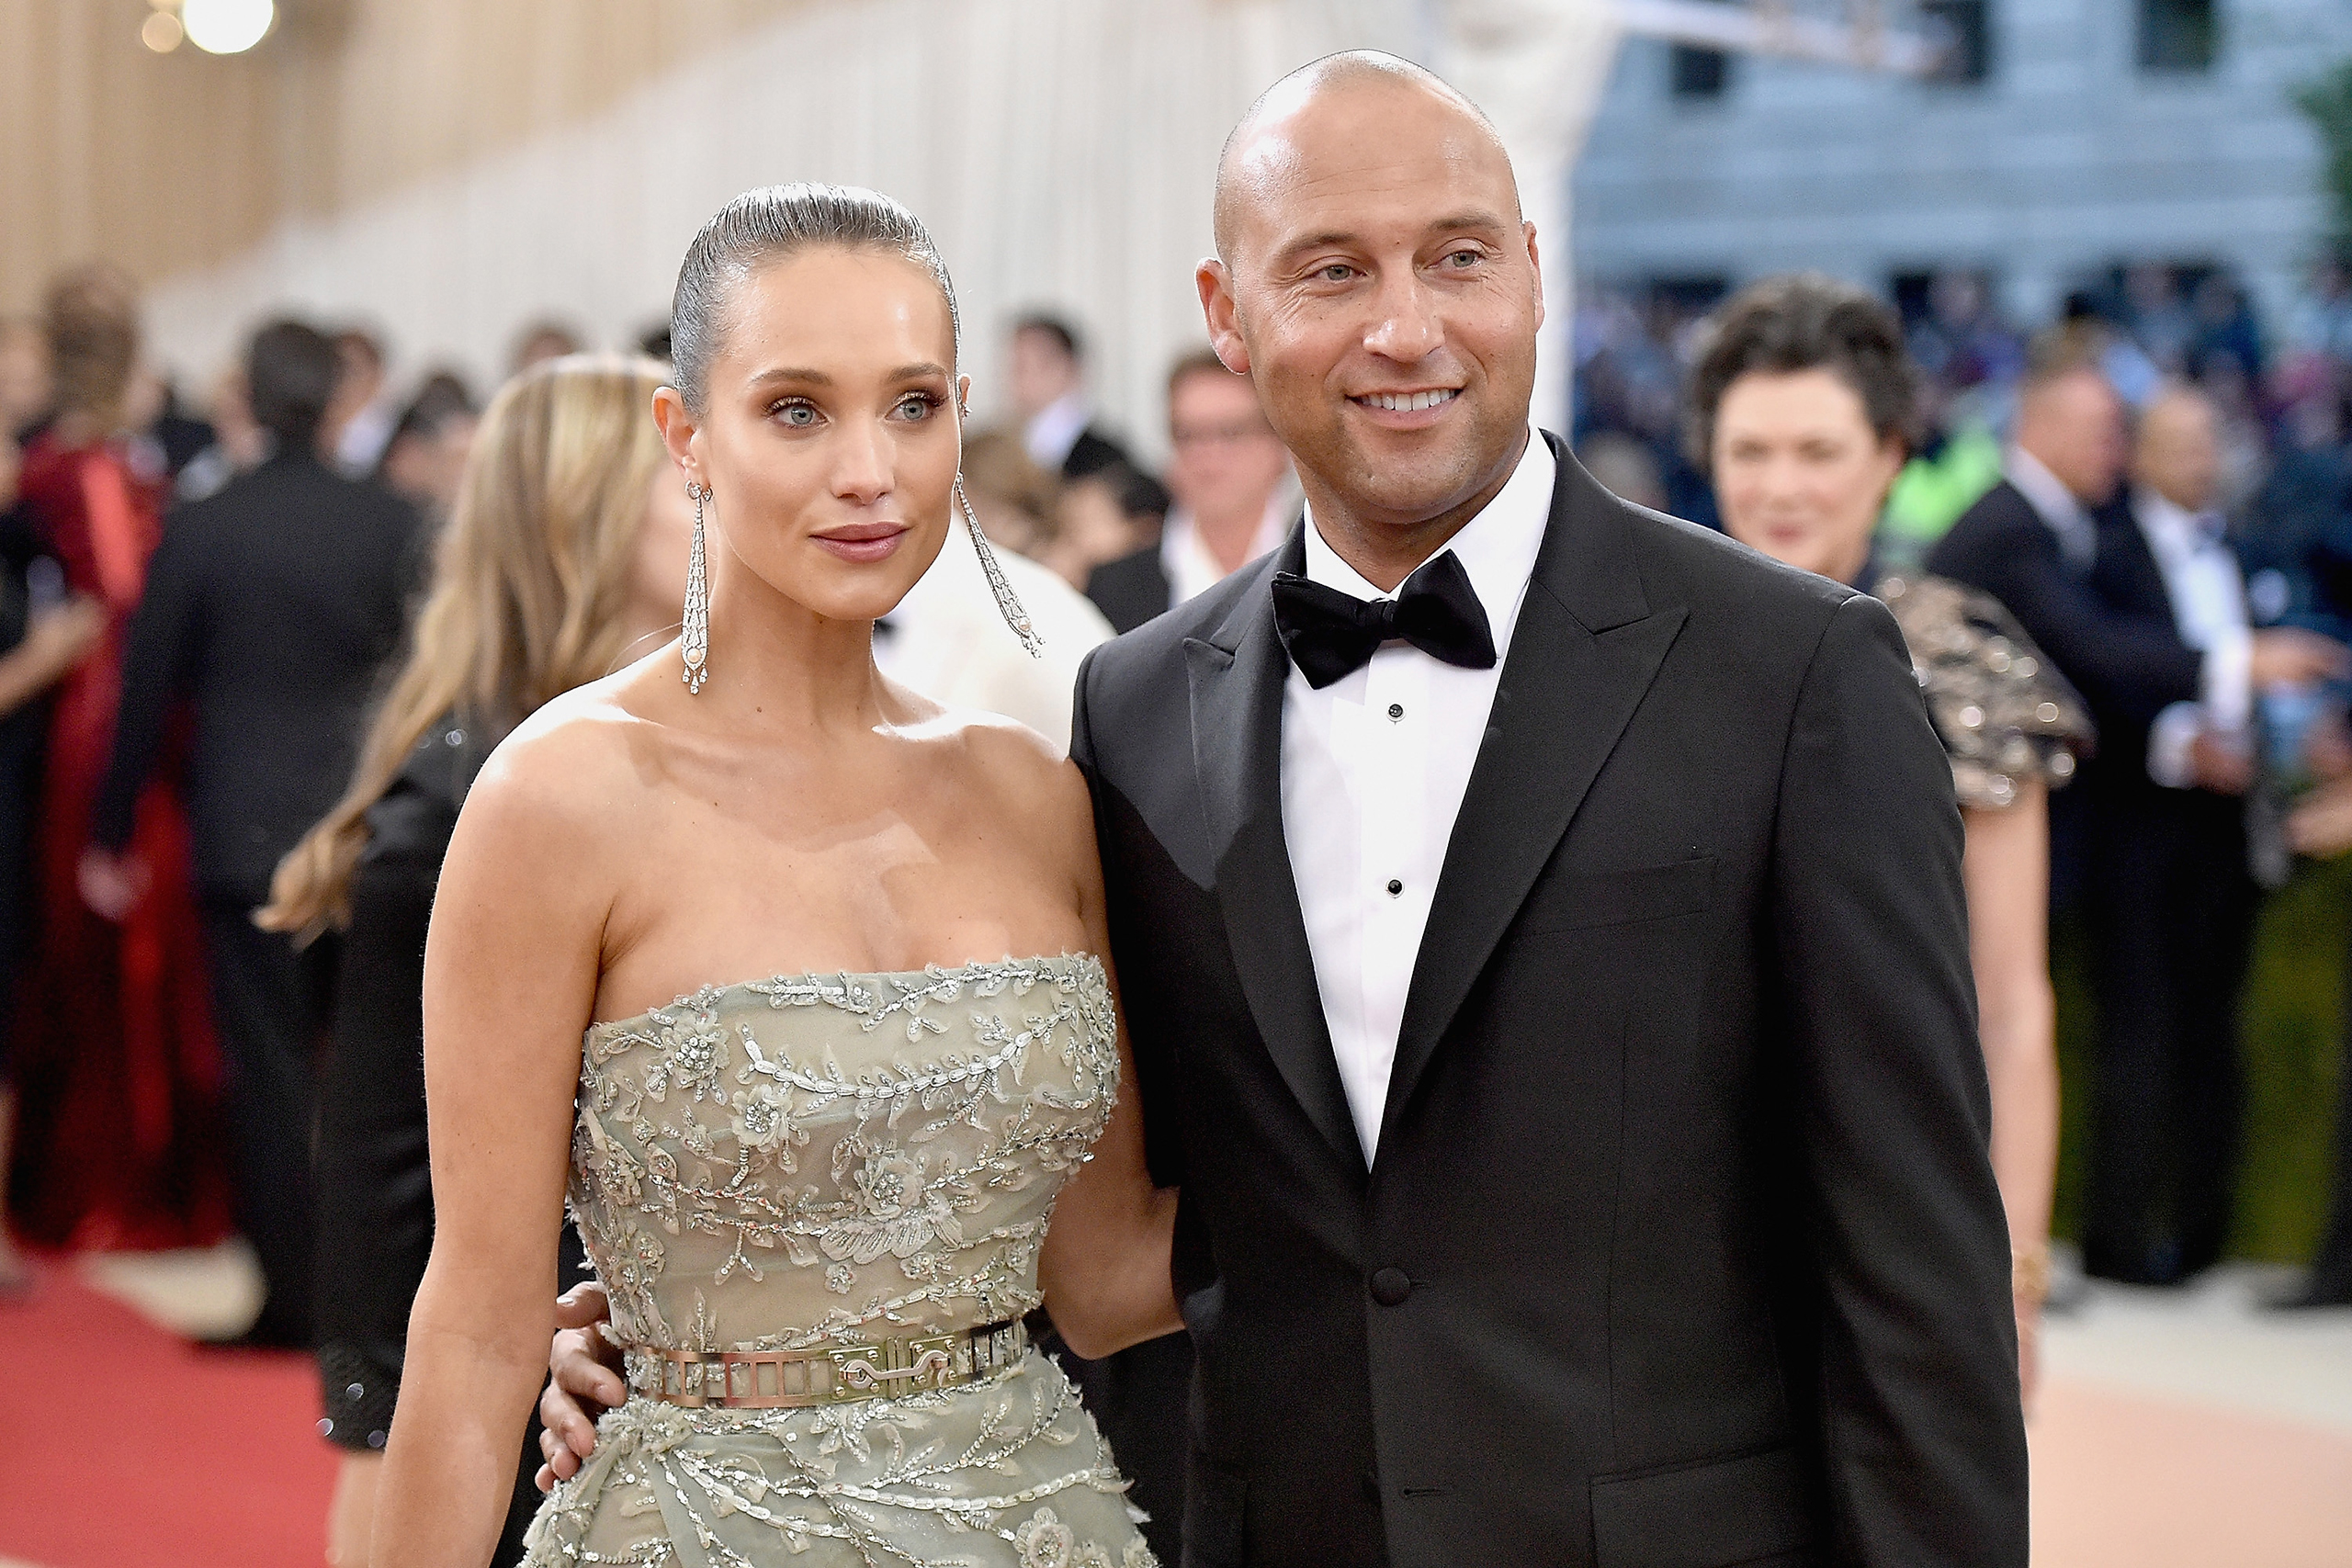 Hannah Davis and Derek Jeter attend the Costume Institute Gala at Metropolitan Museum of Art in New York City on May 2, 2016.